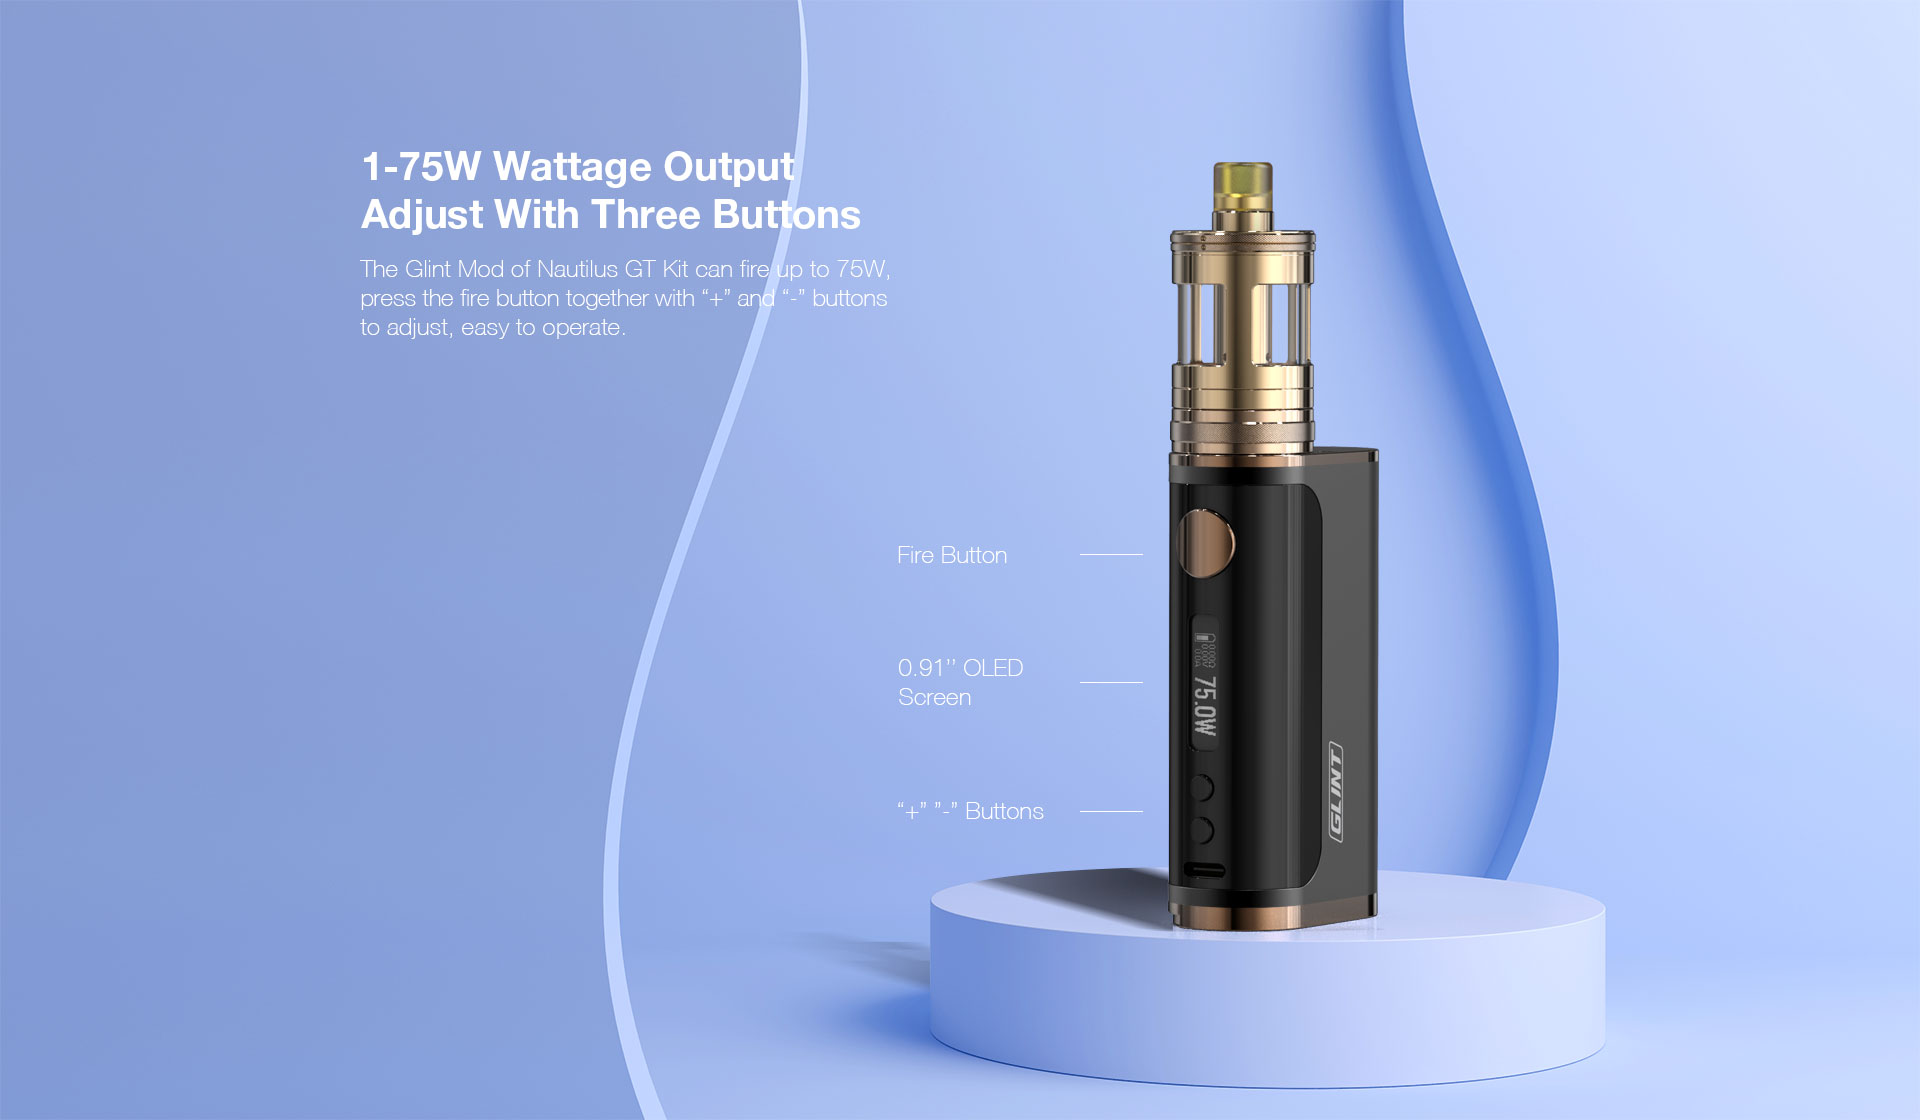 1-75W Wattage Output Adjust with Three Buttons